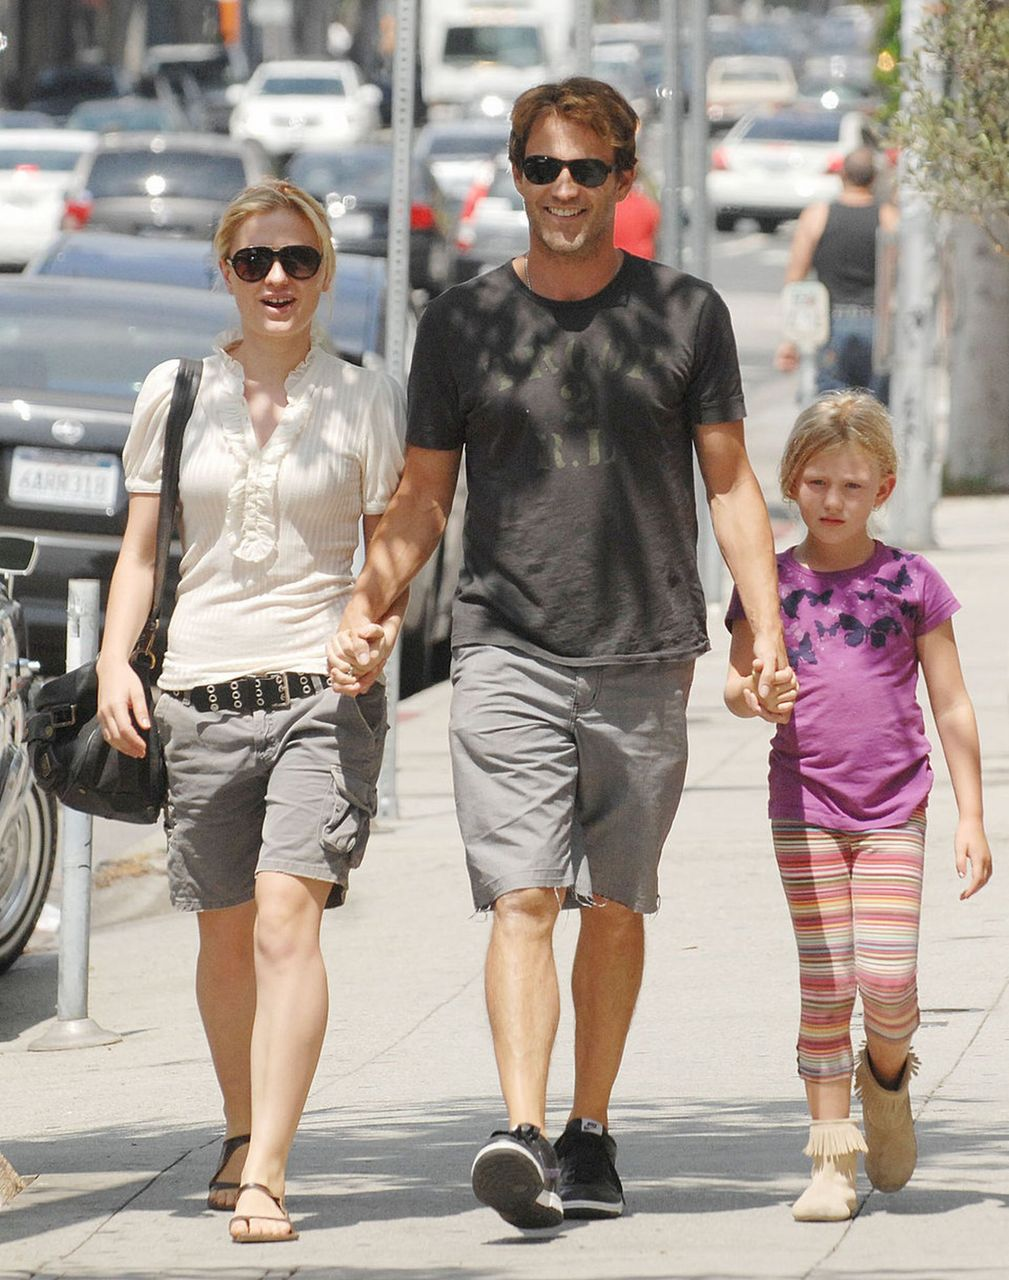 [Anna+Paquin+and+Stepehn+Moyer+and+his+daughter]